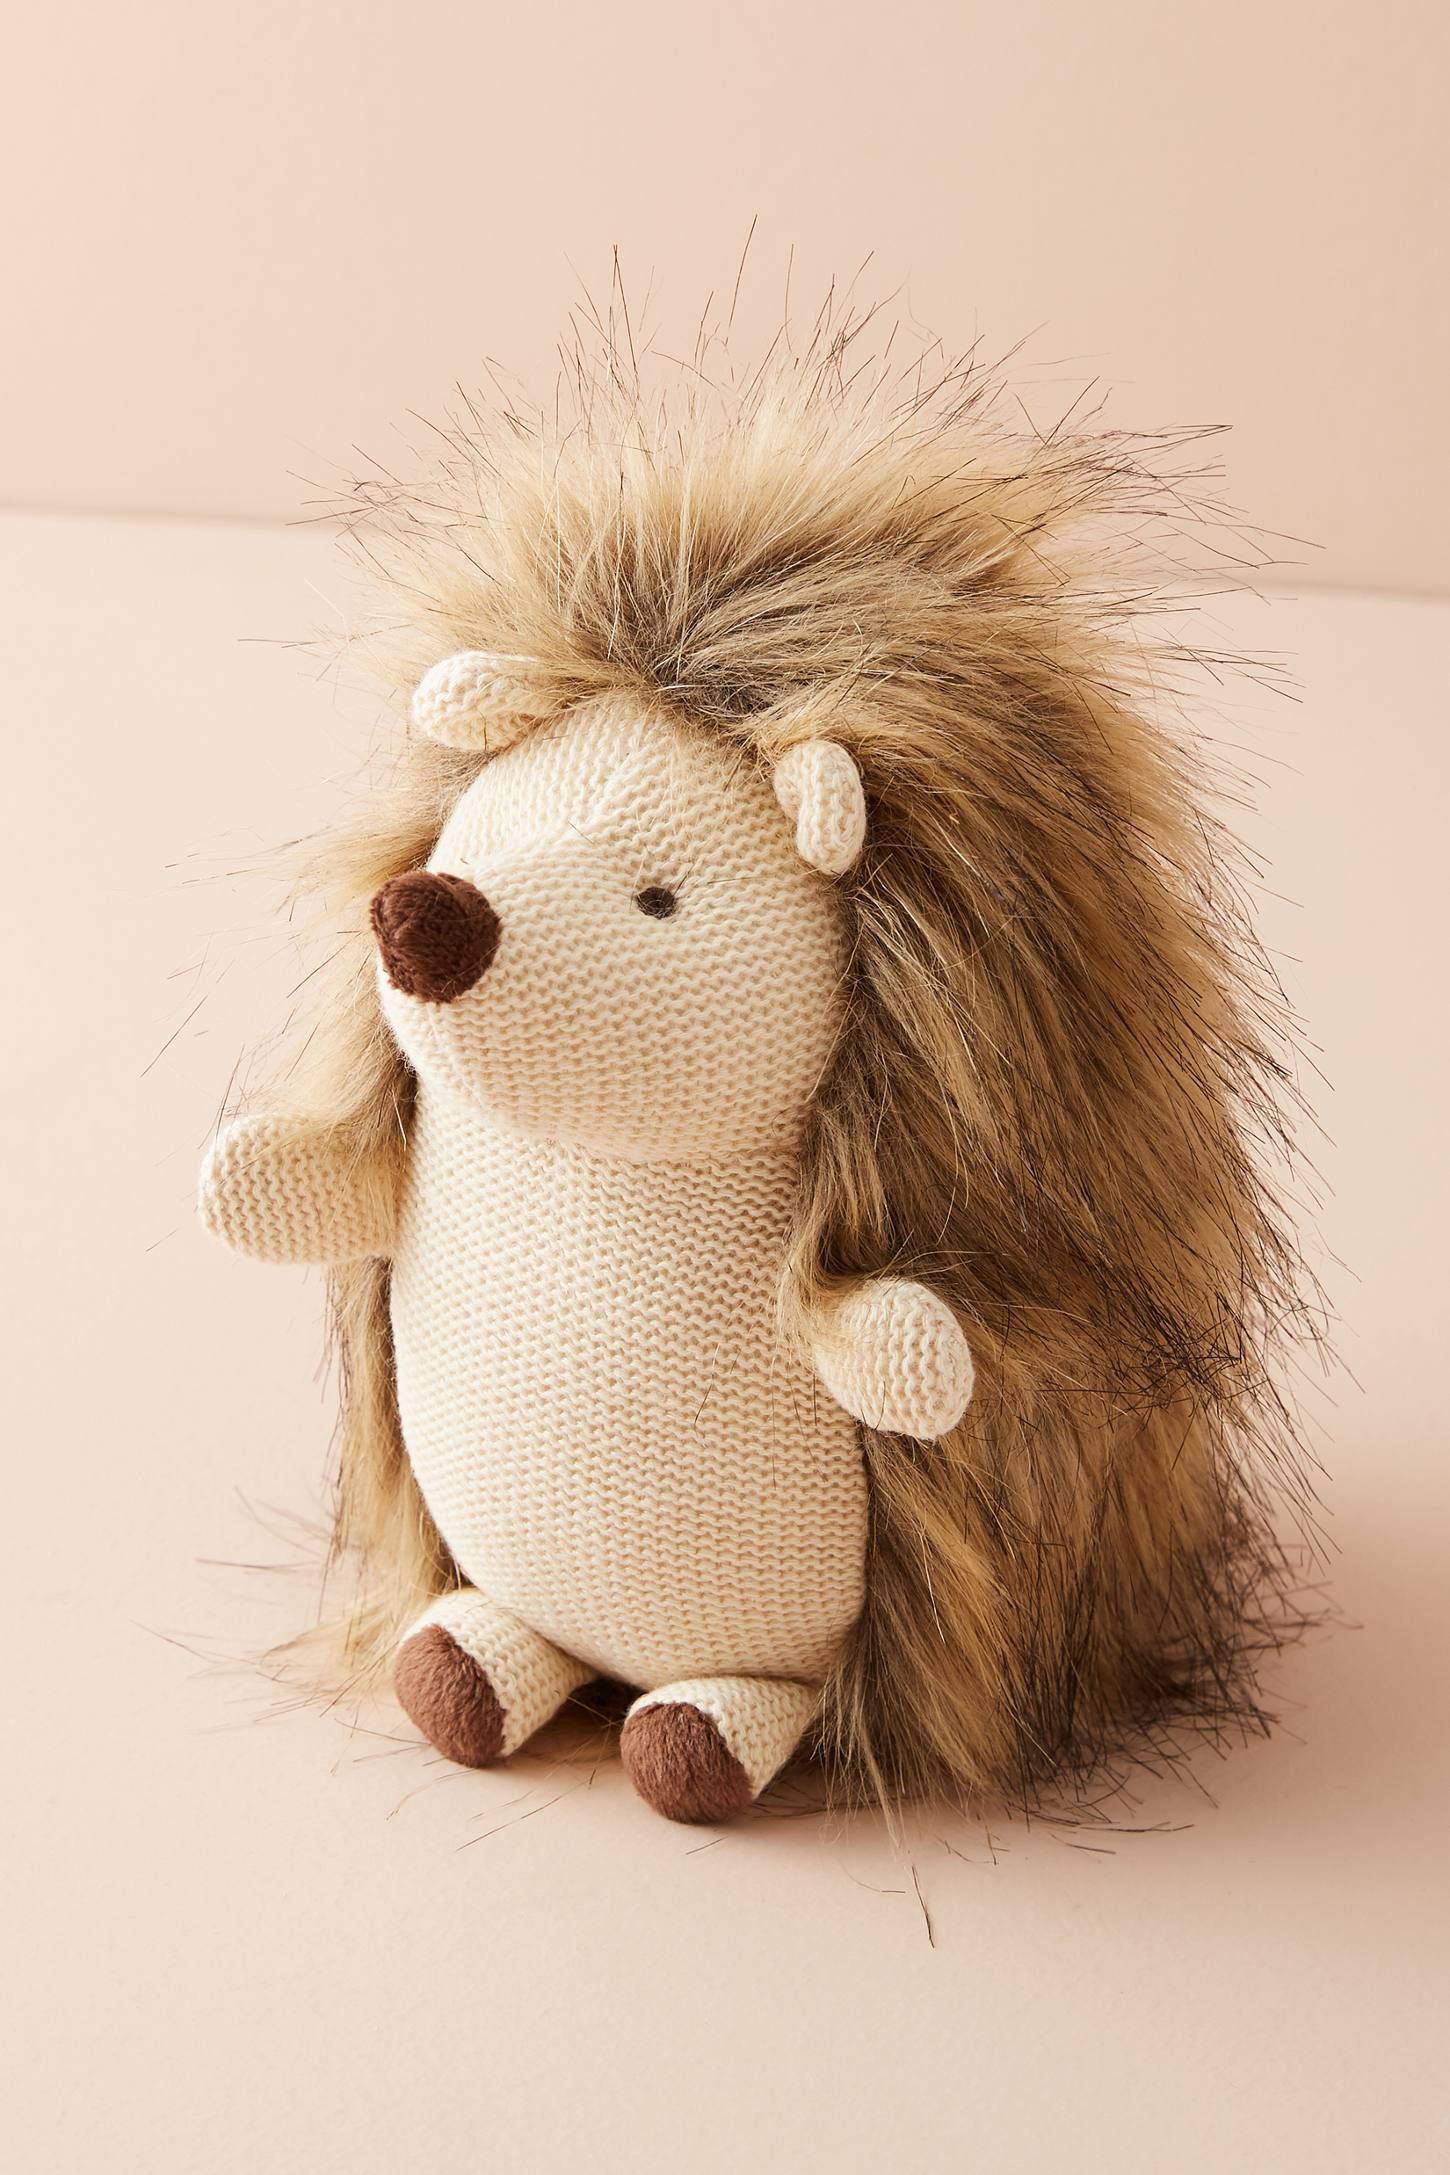 Shop The Plush Hedgehog And More Anthropologie At Anthropologie Today Read Customer Reviews Discover Product Details Hedgehog Nursery Animal Baby Room Plush [ 2175 x 1450 Pixel ]